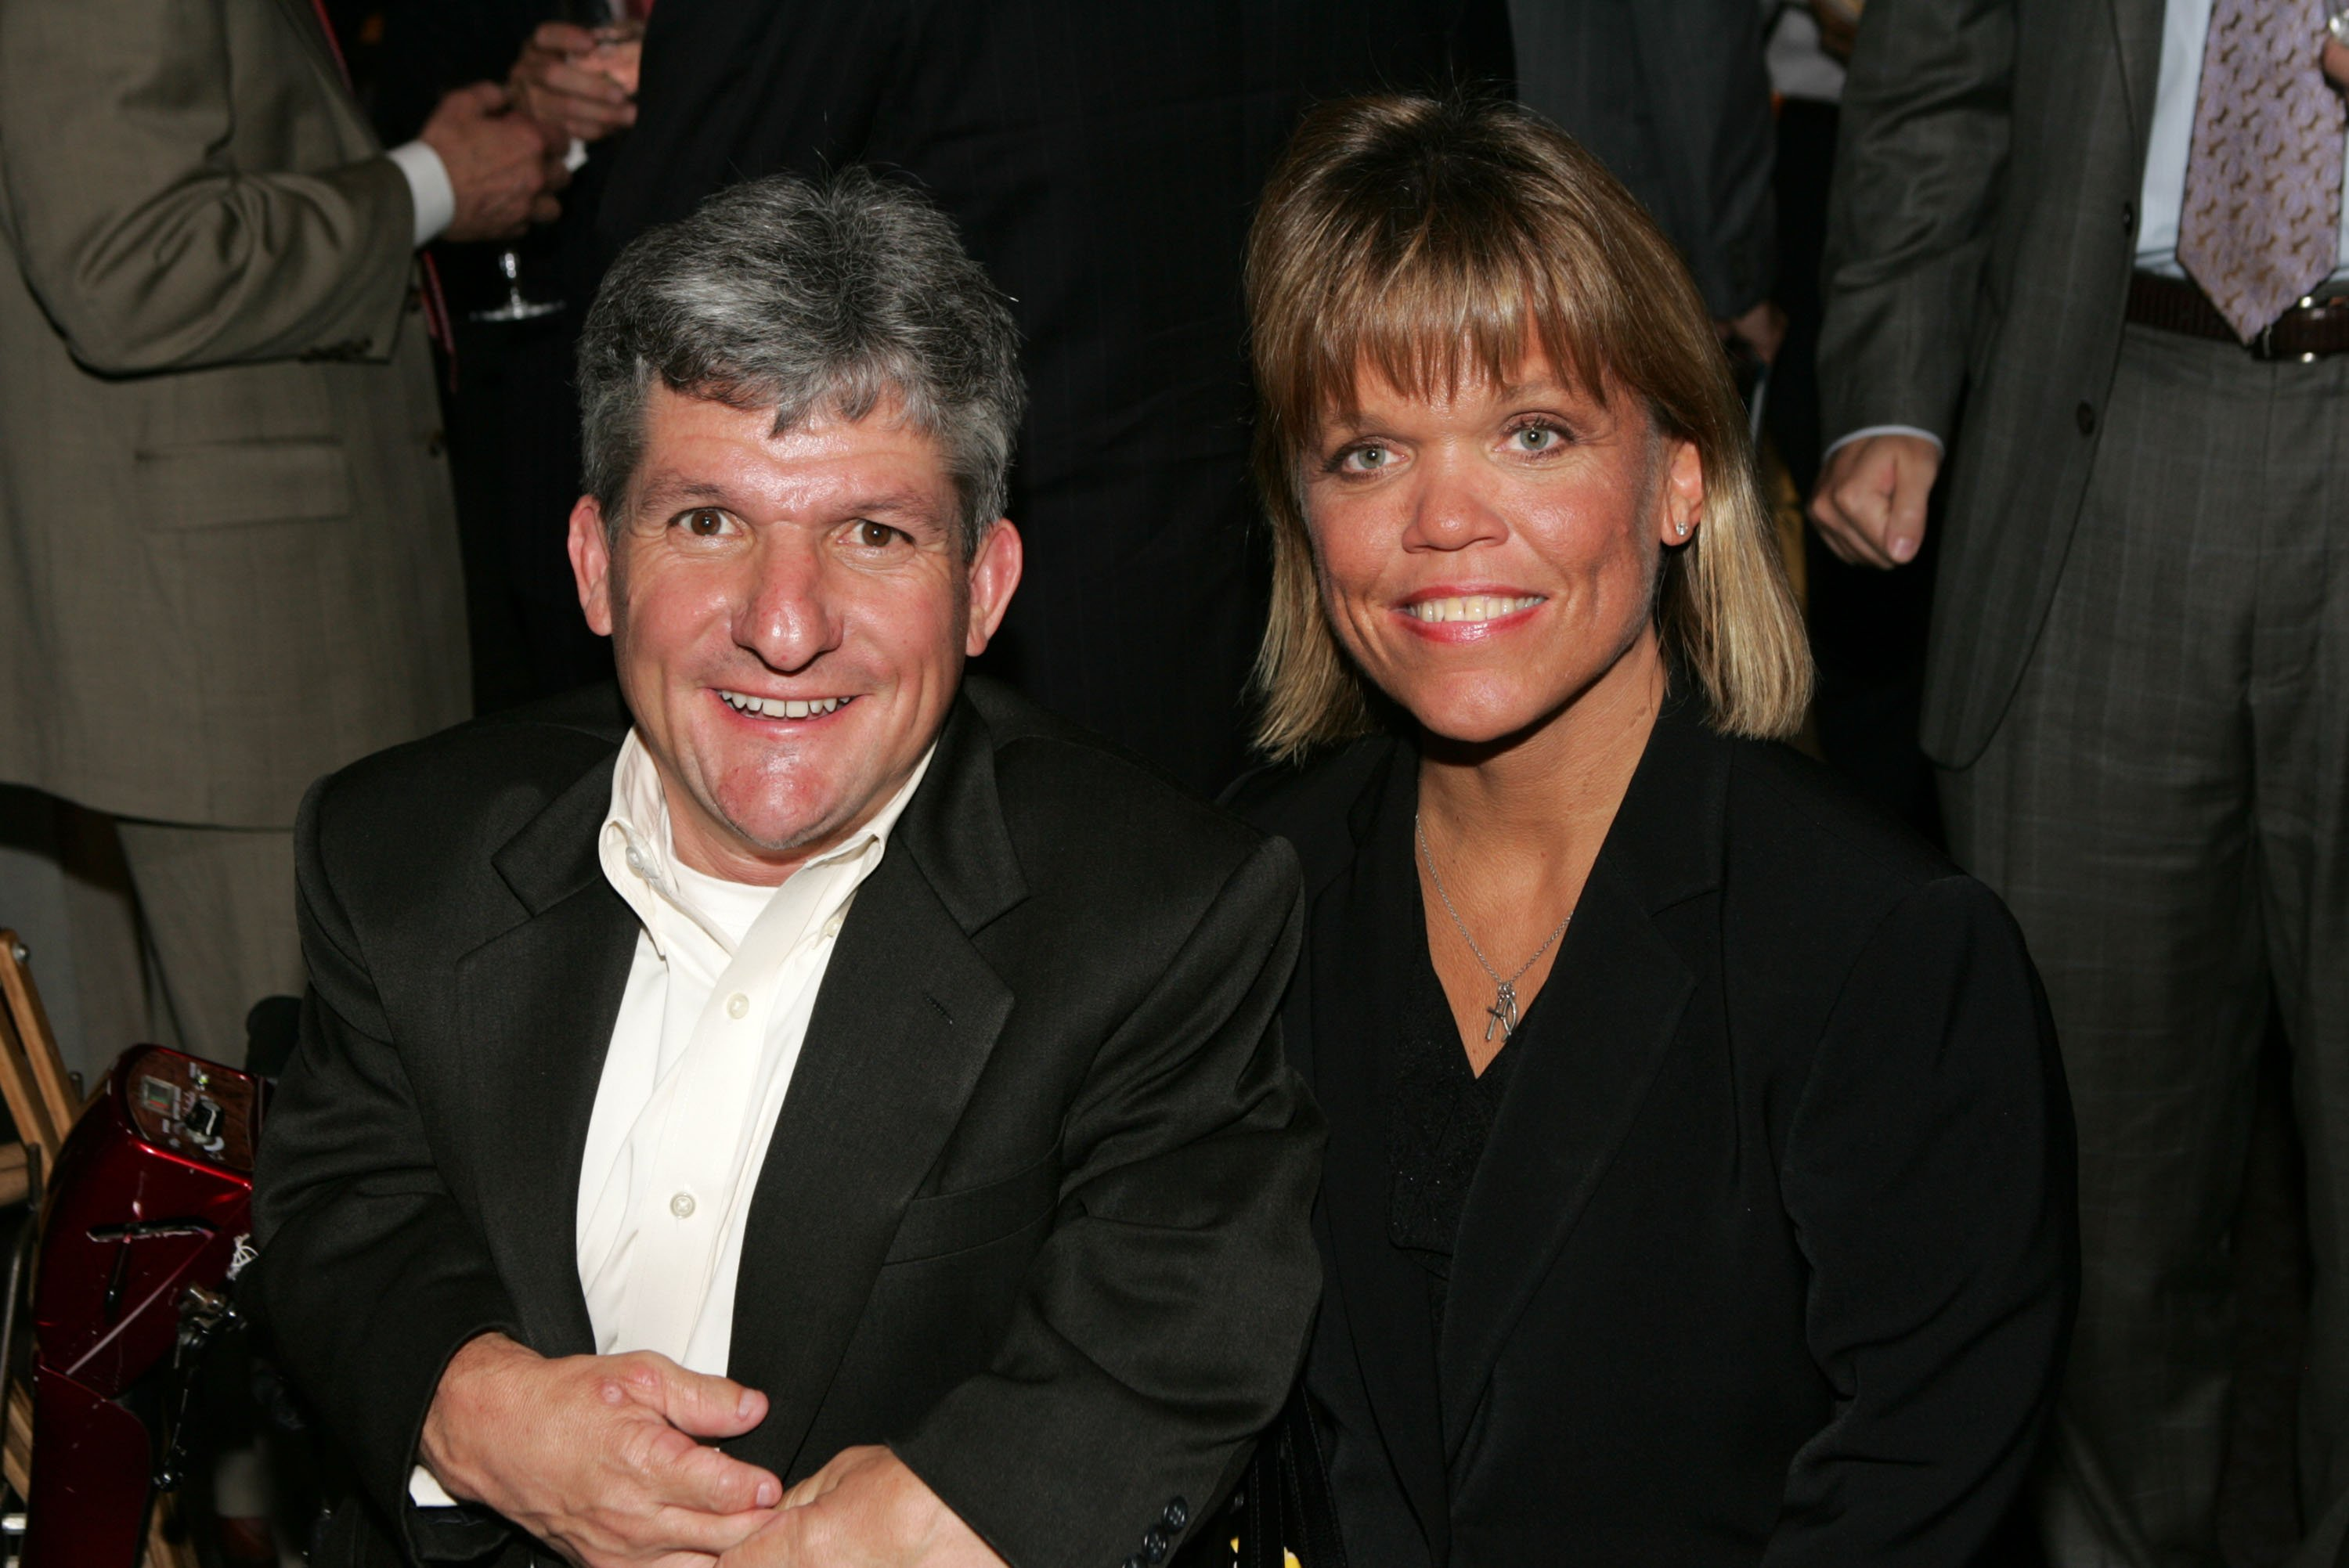 Matt and Amy Roloff attend the Discovery Upfront Presentation NY - Talent Images on April 23, 2008, in New York City. | Source: Getty Images.